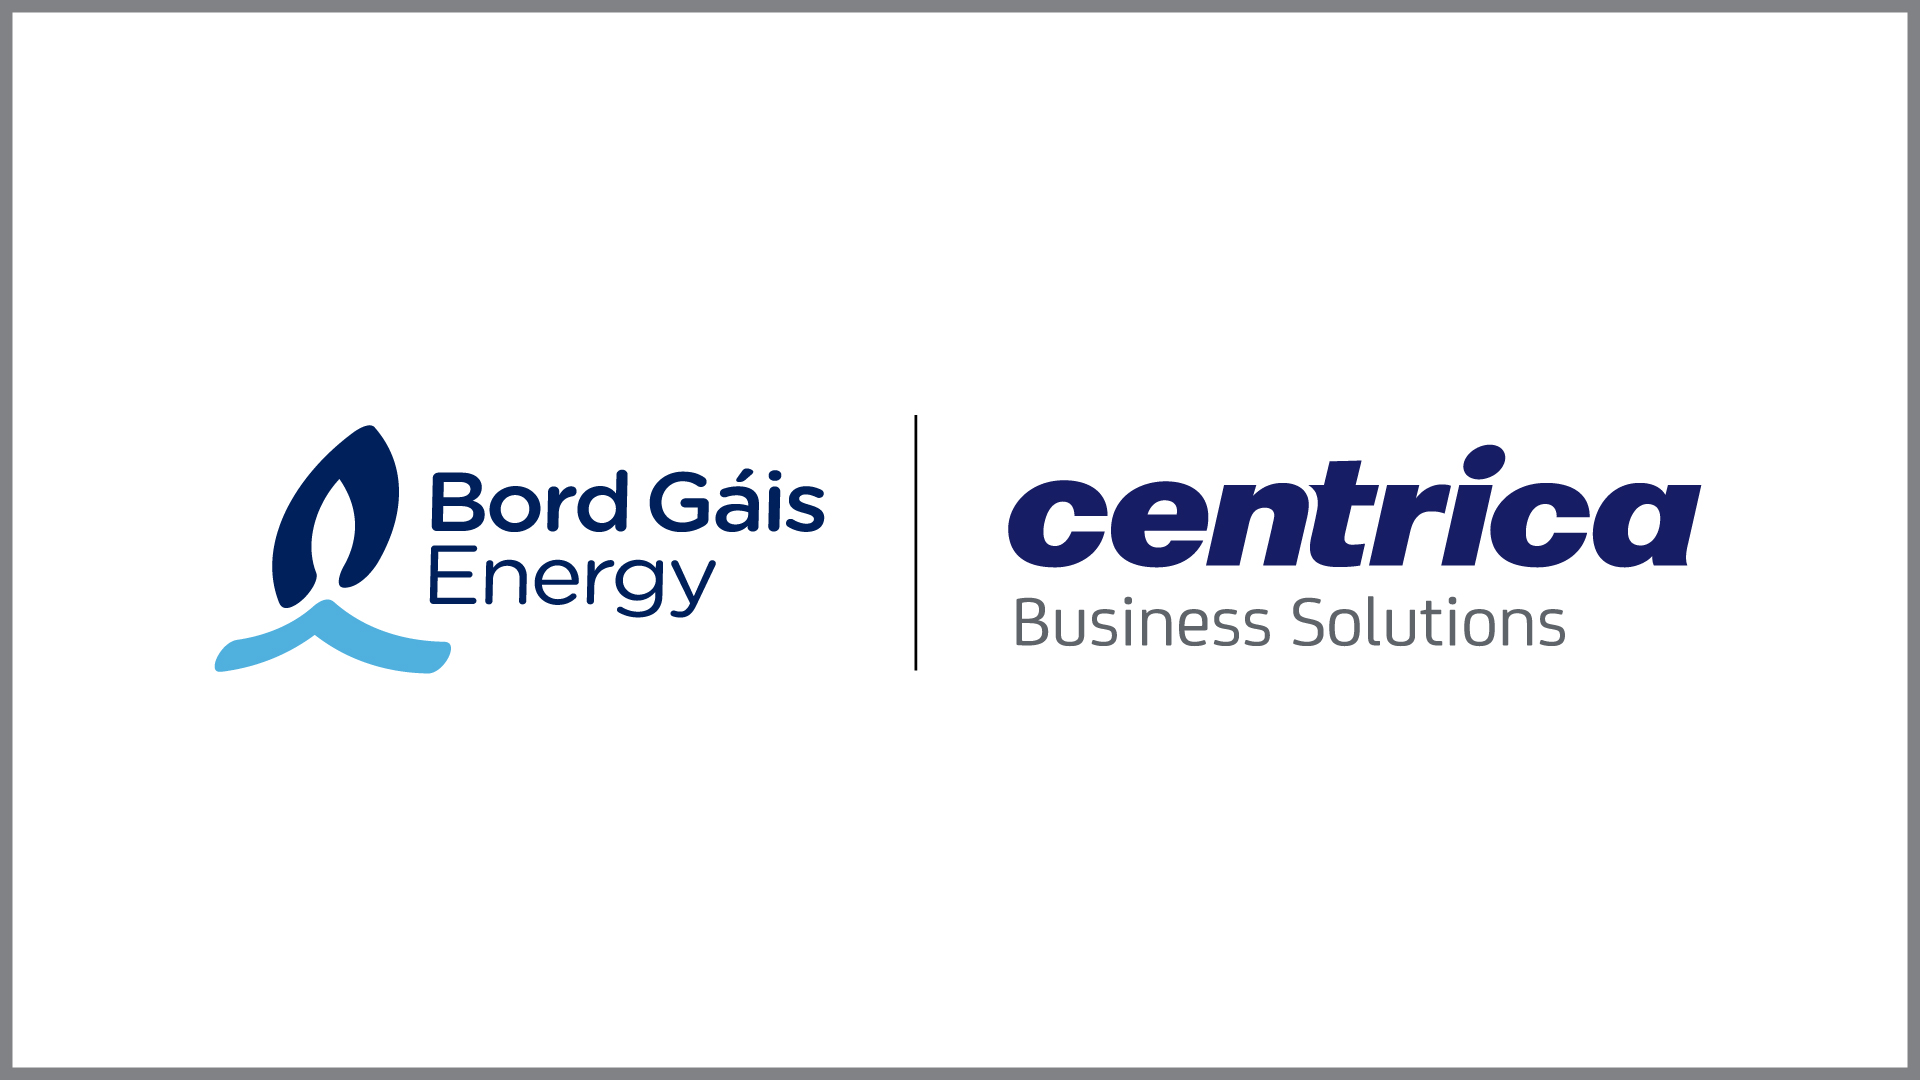 Bord Gais Energy — The Executive Institute - Connecting